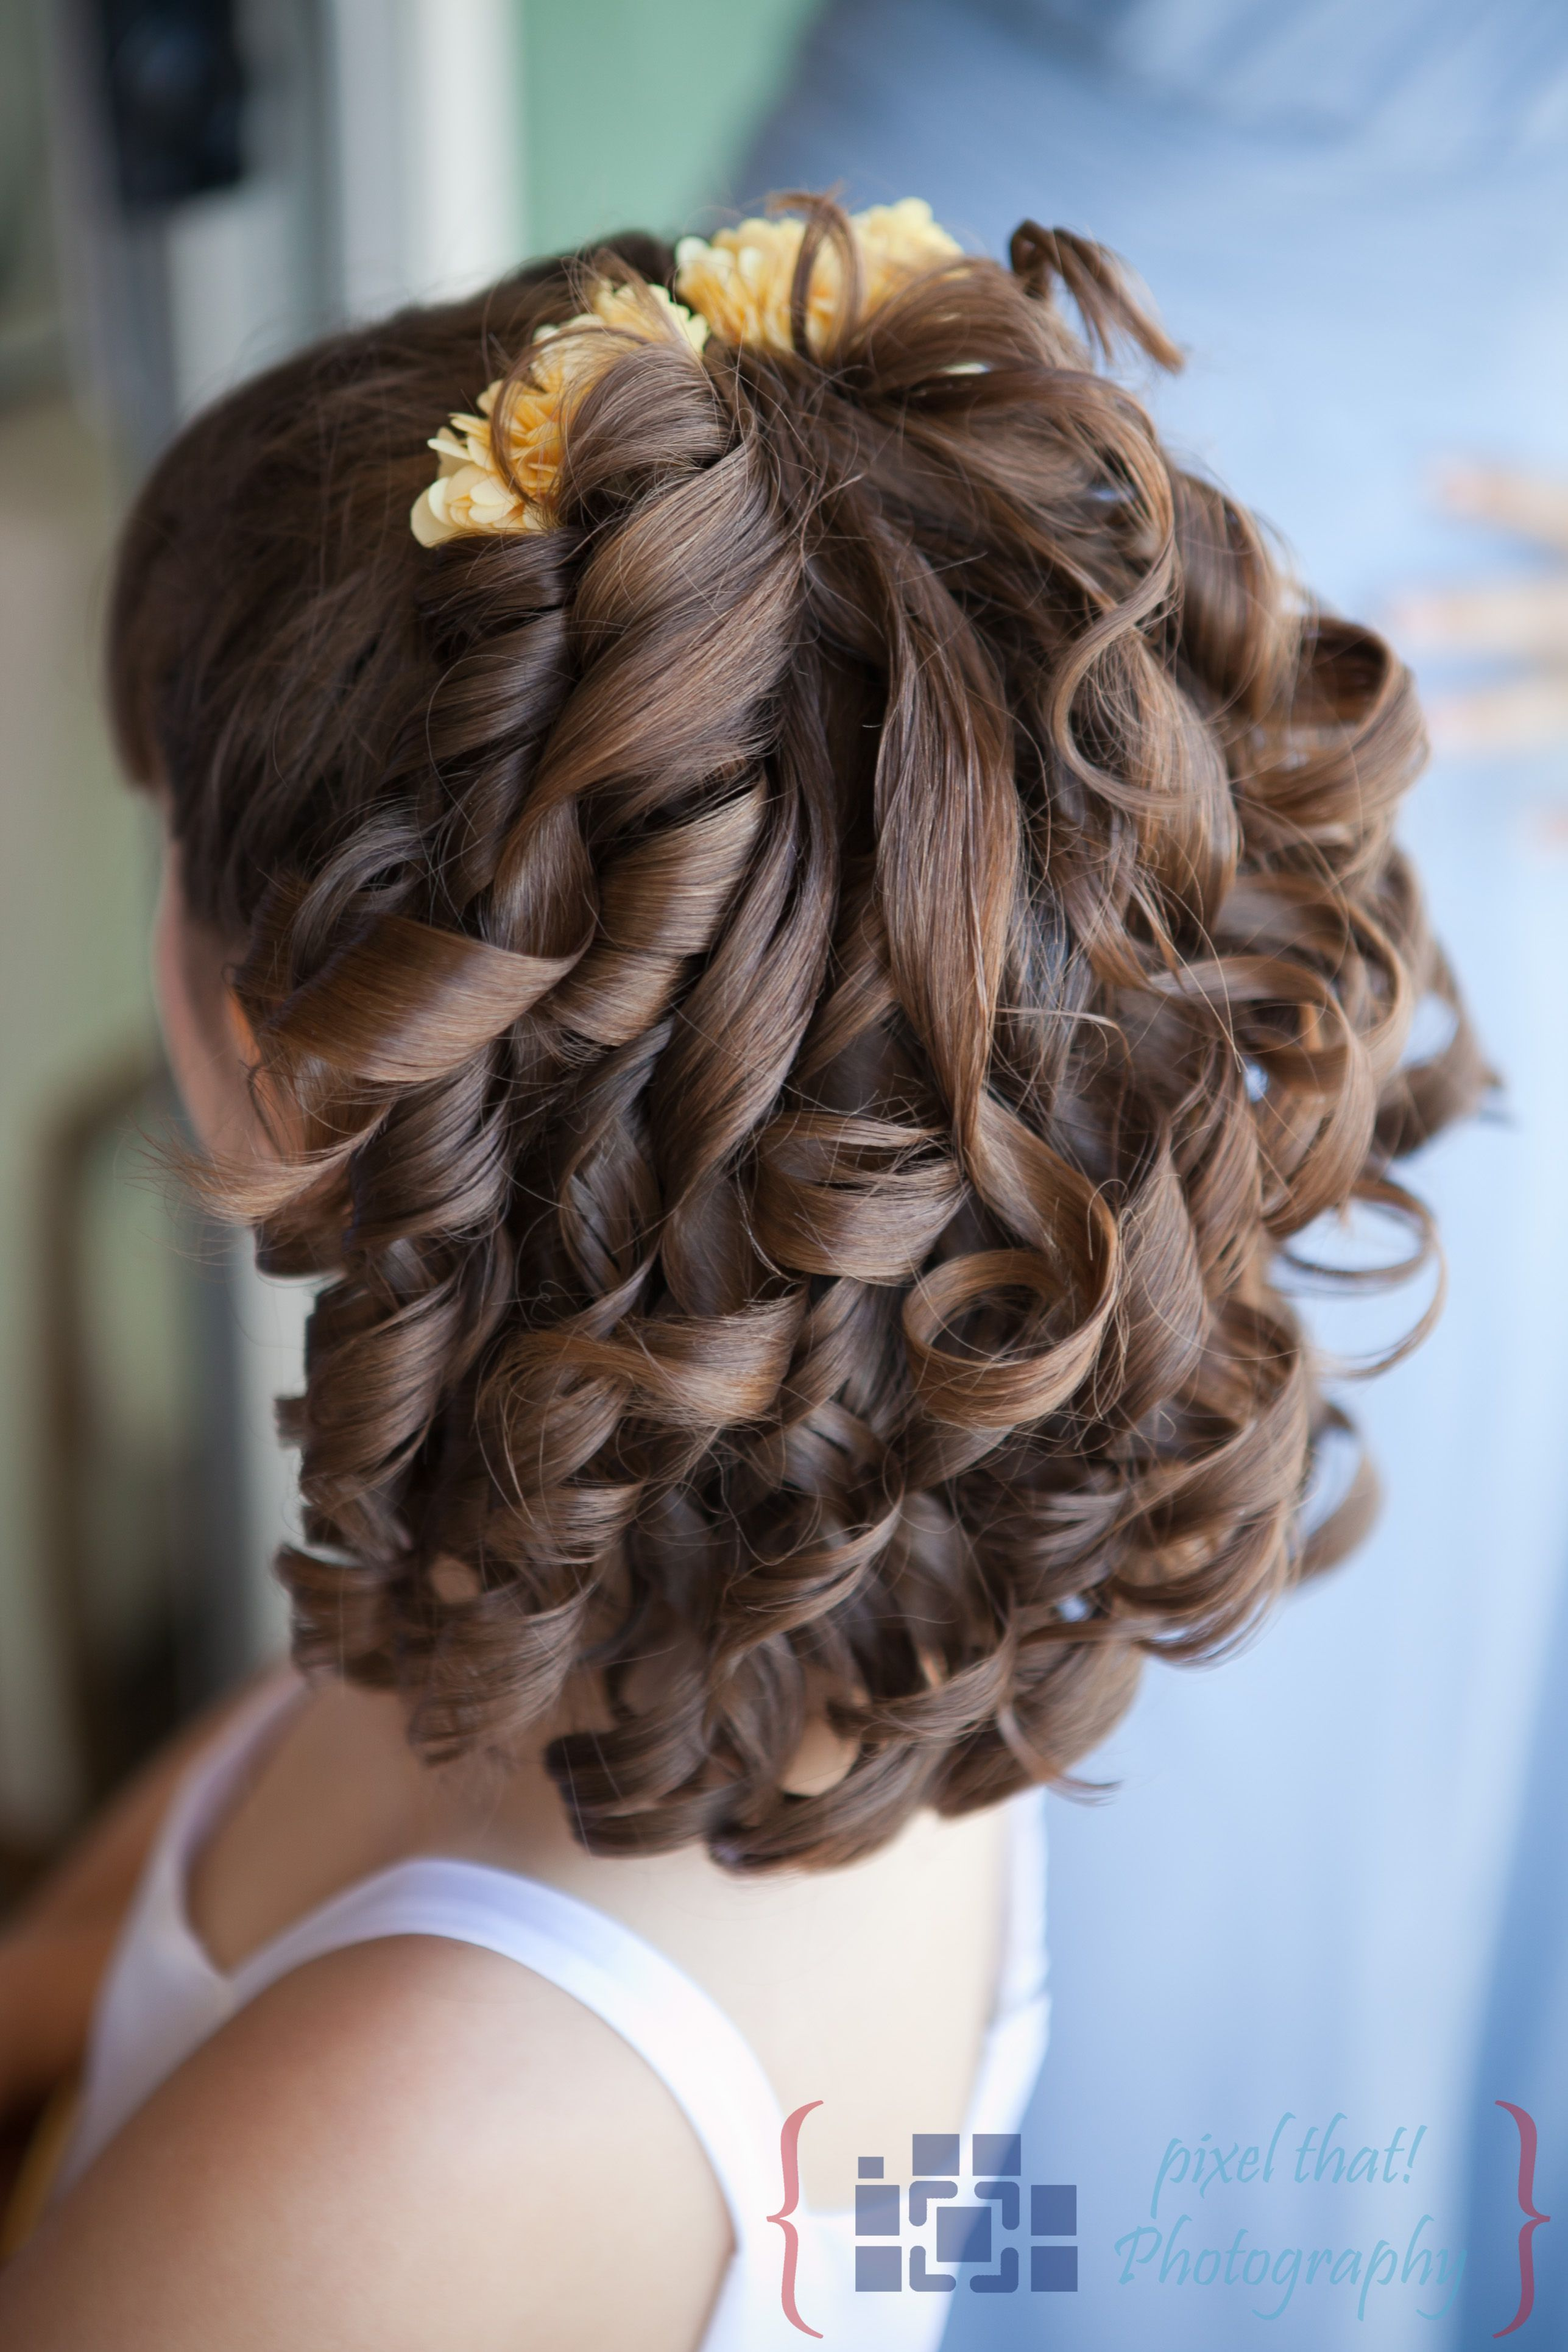 10 EASY HAIRSTYLES FOR A SPECIAL OCCASION - YouTube